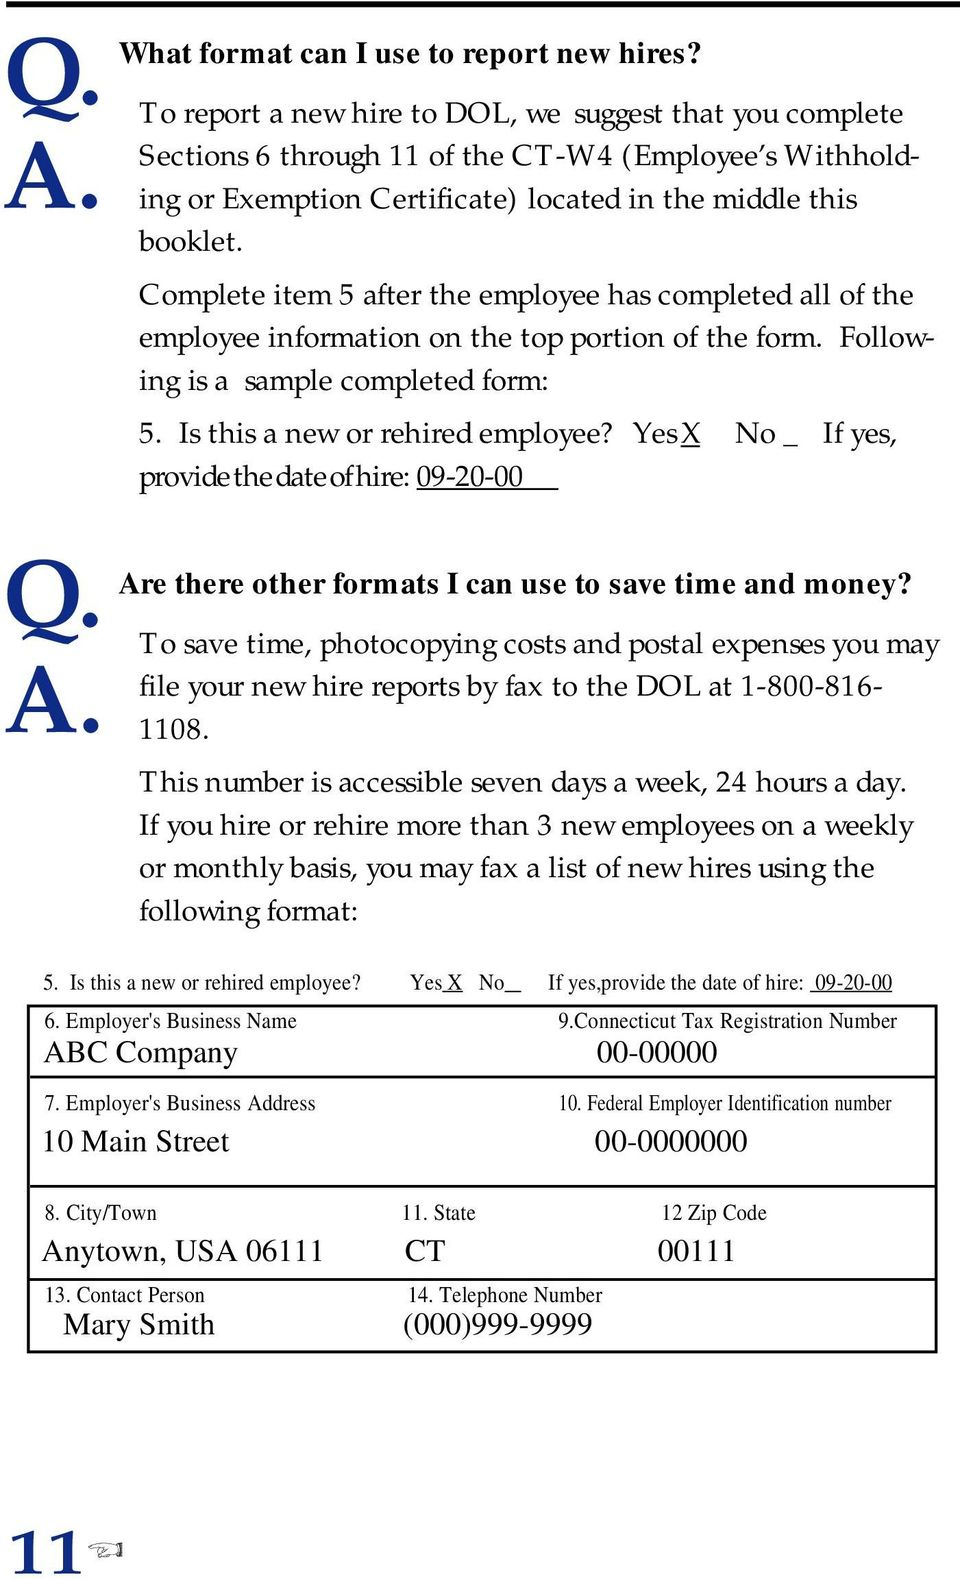 Complete item 5 after the employee has completed all of the employee information on the top portion of the form. Following is a sample completed form: 5. Is this a new or rehired employee?